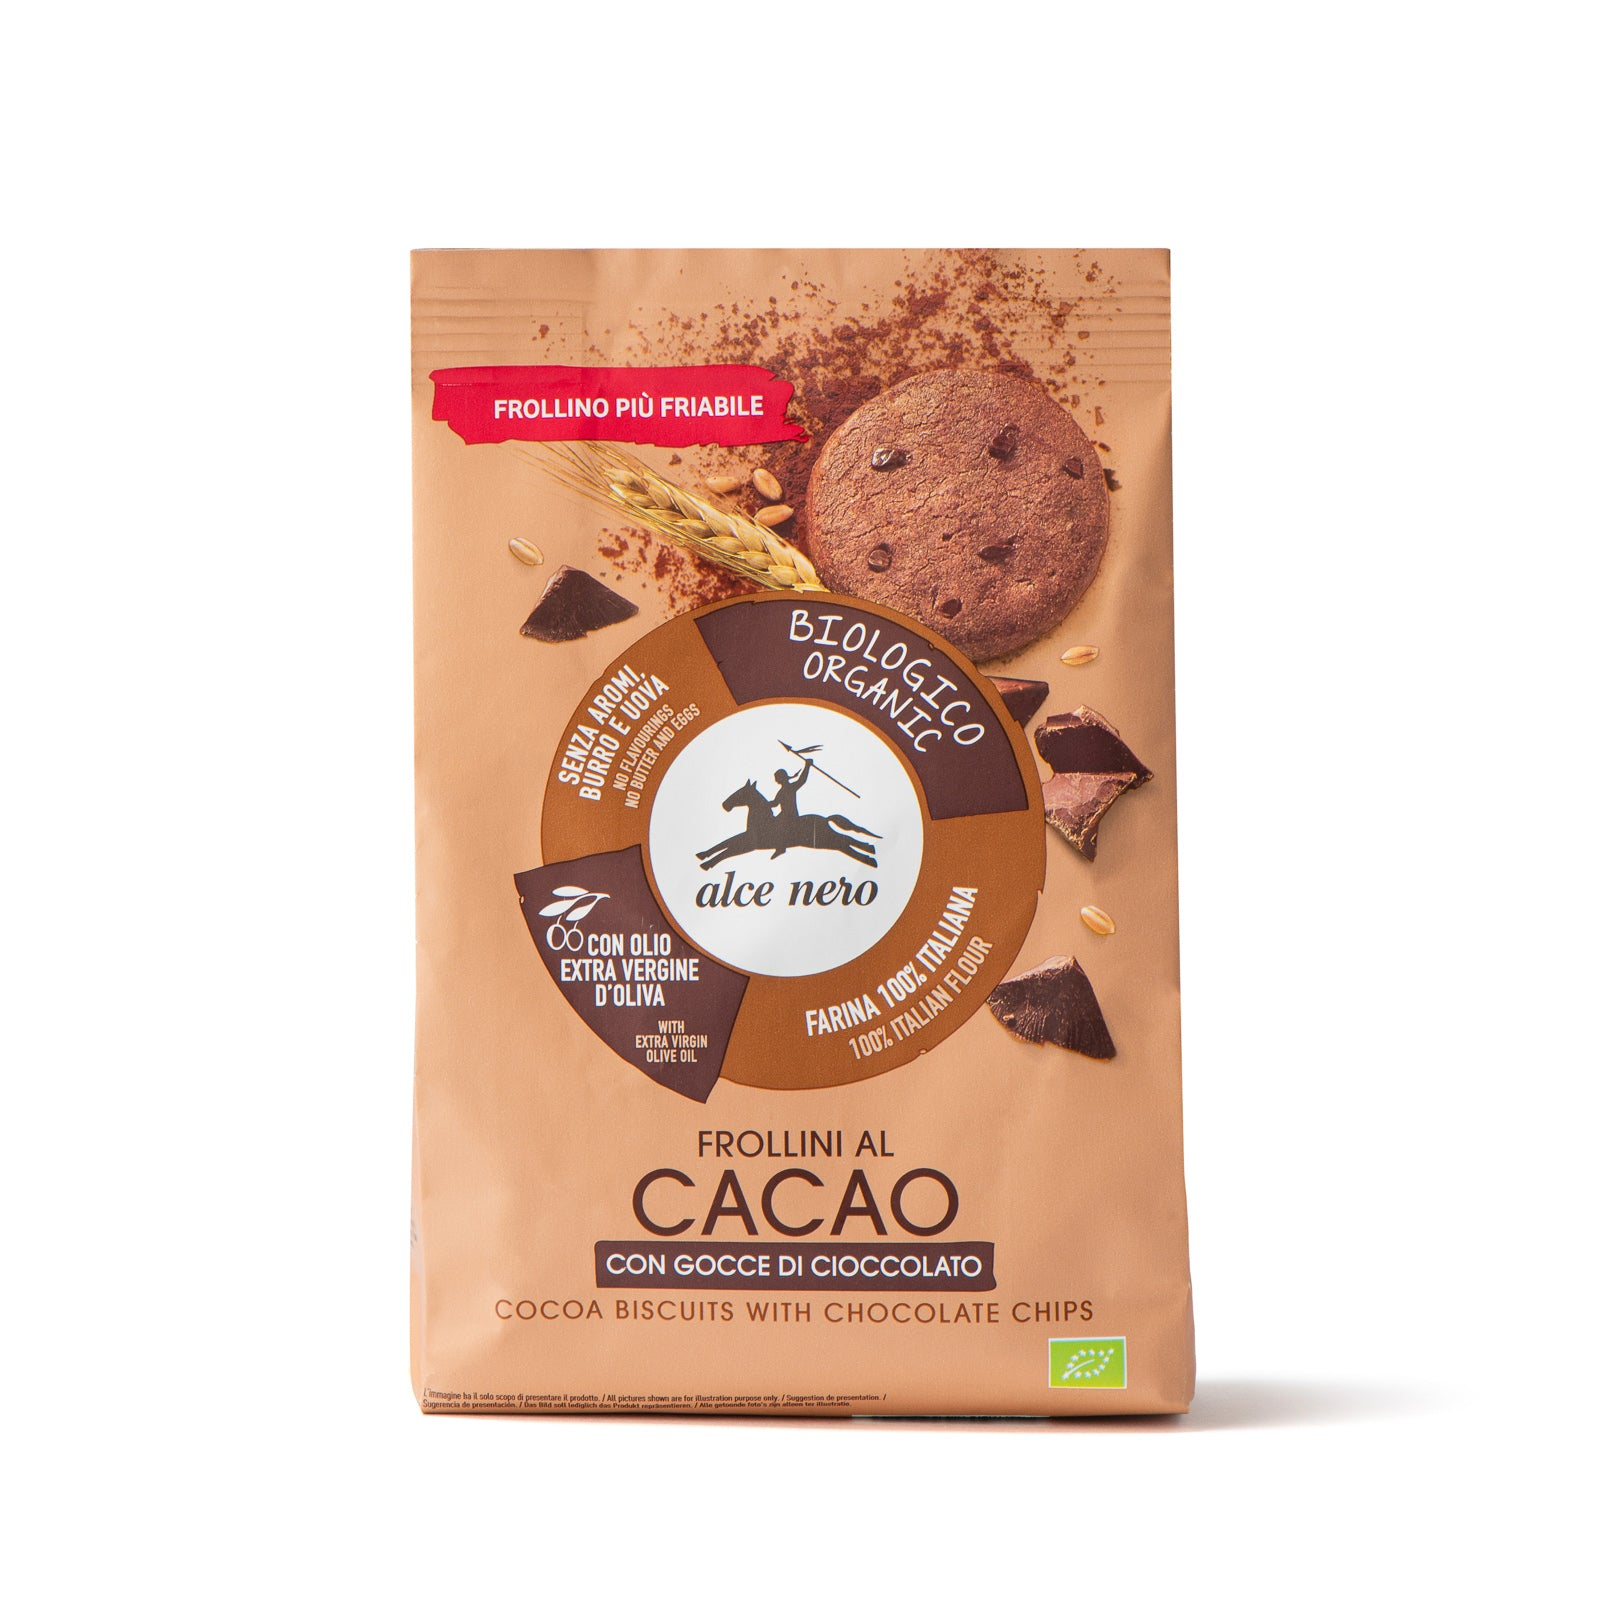 Galletas de cacao con pepitas de chocolate ecológicas - FR949